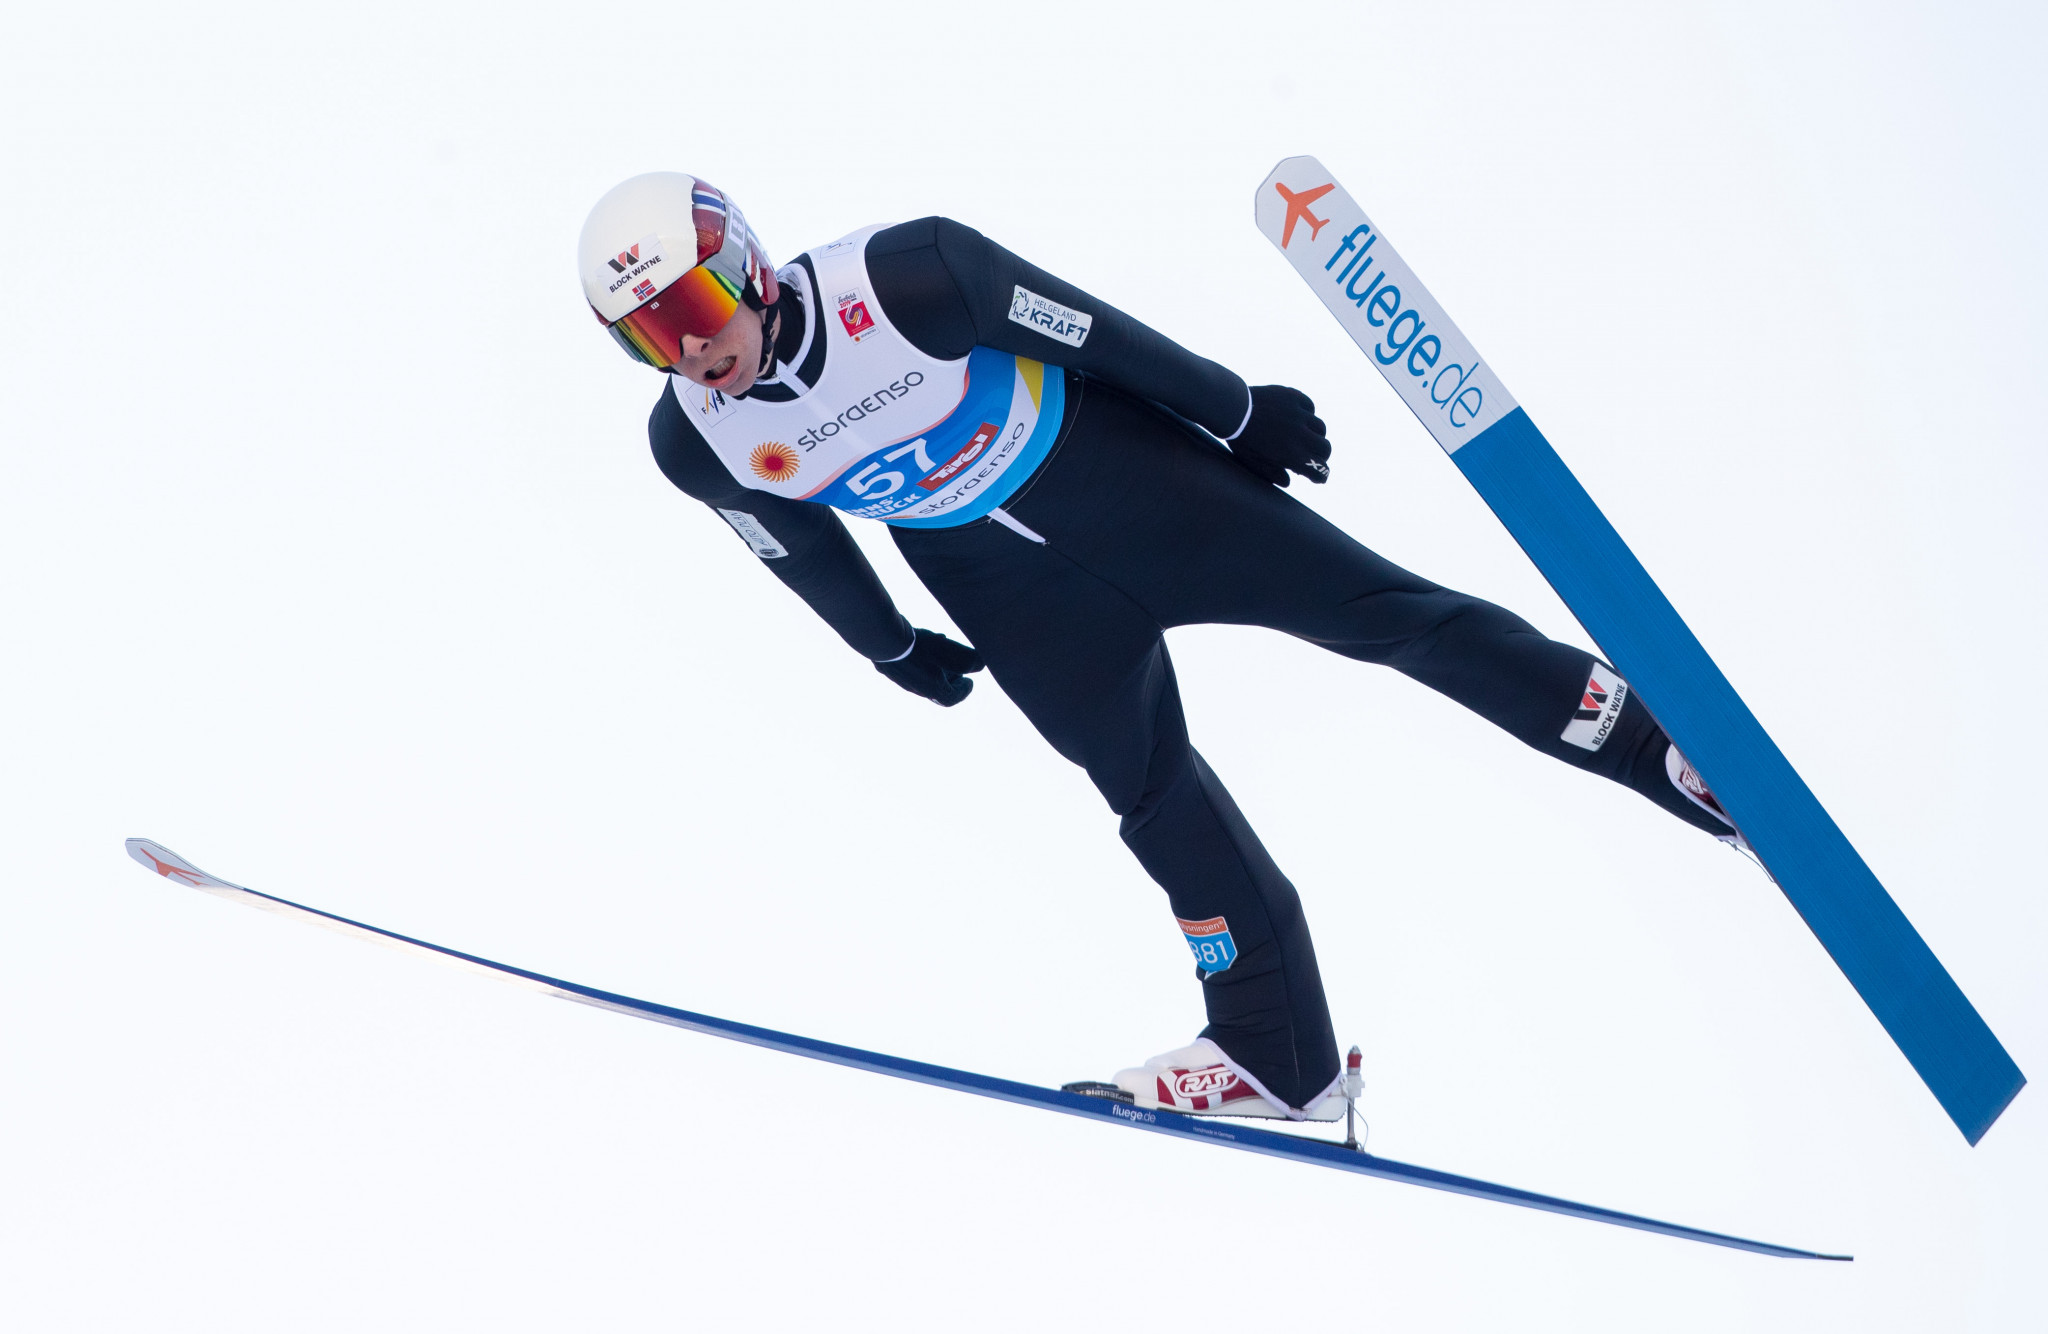 Olympic gold medallist Krog poised for Nordic Combined World Cup return